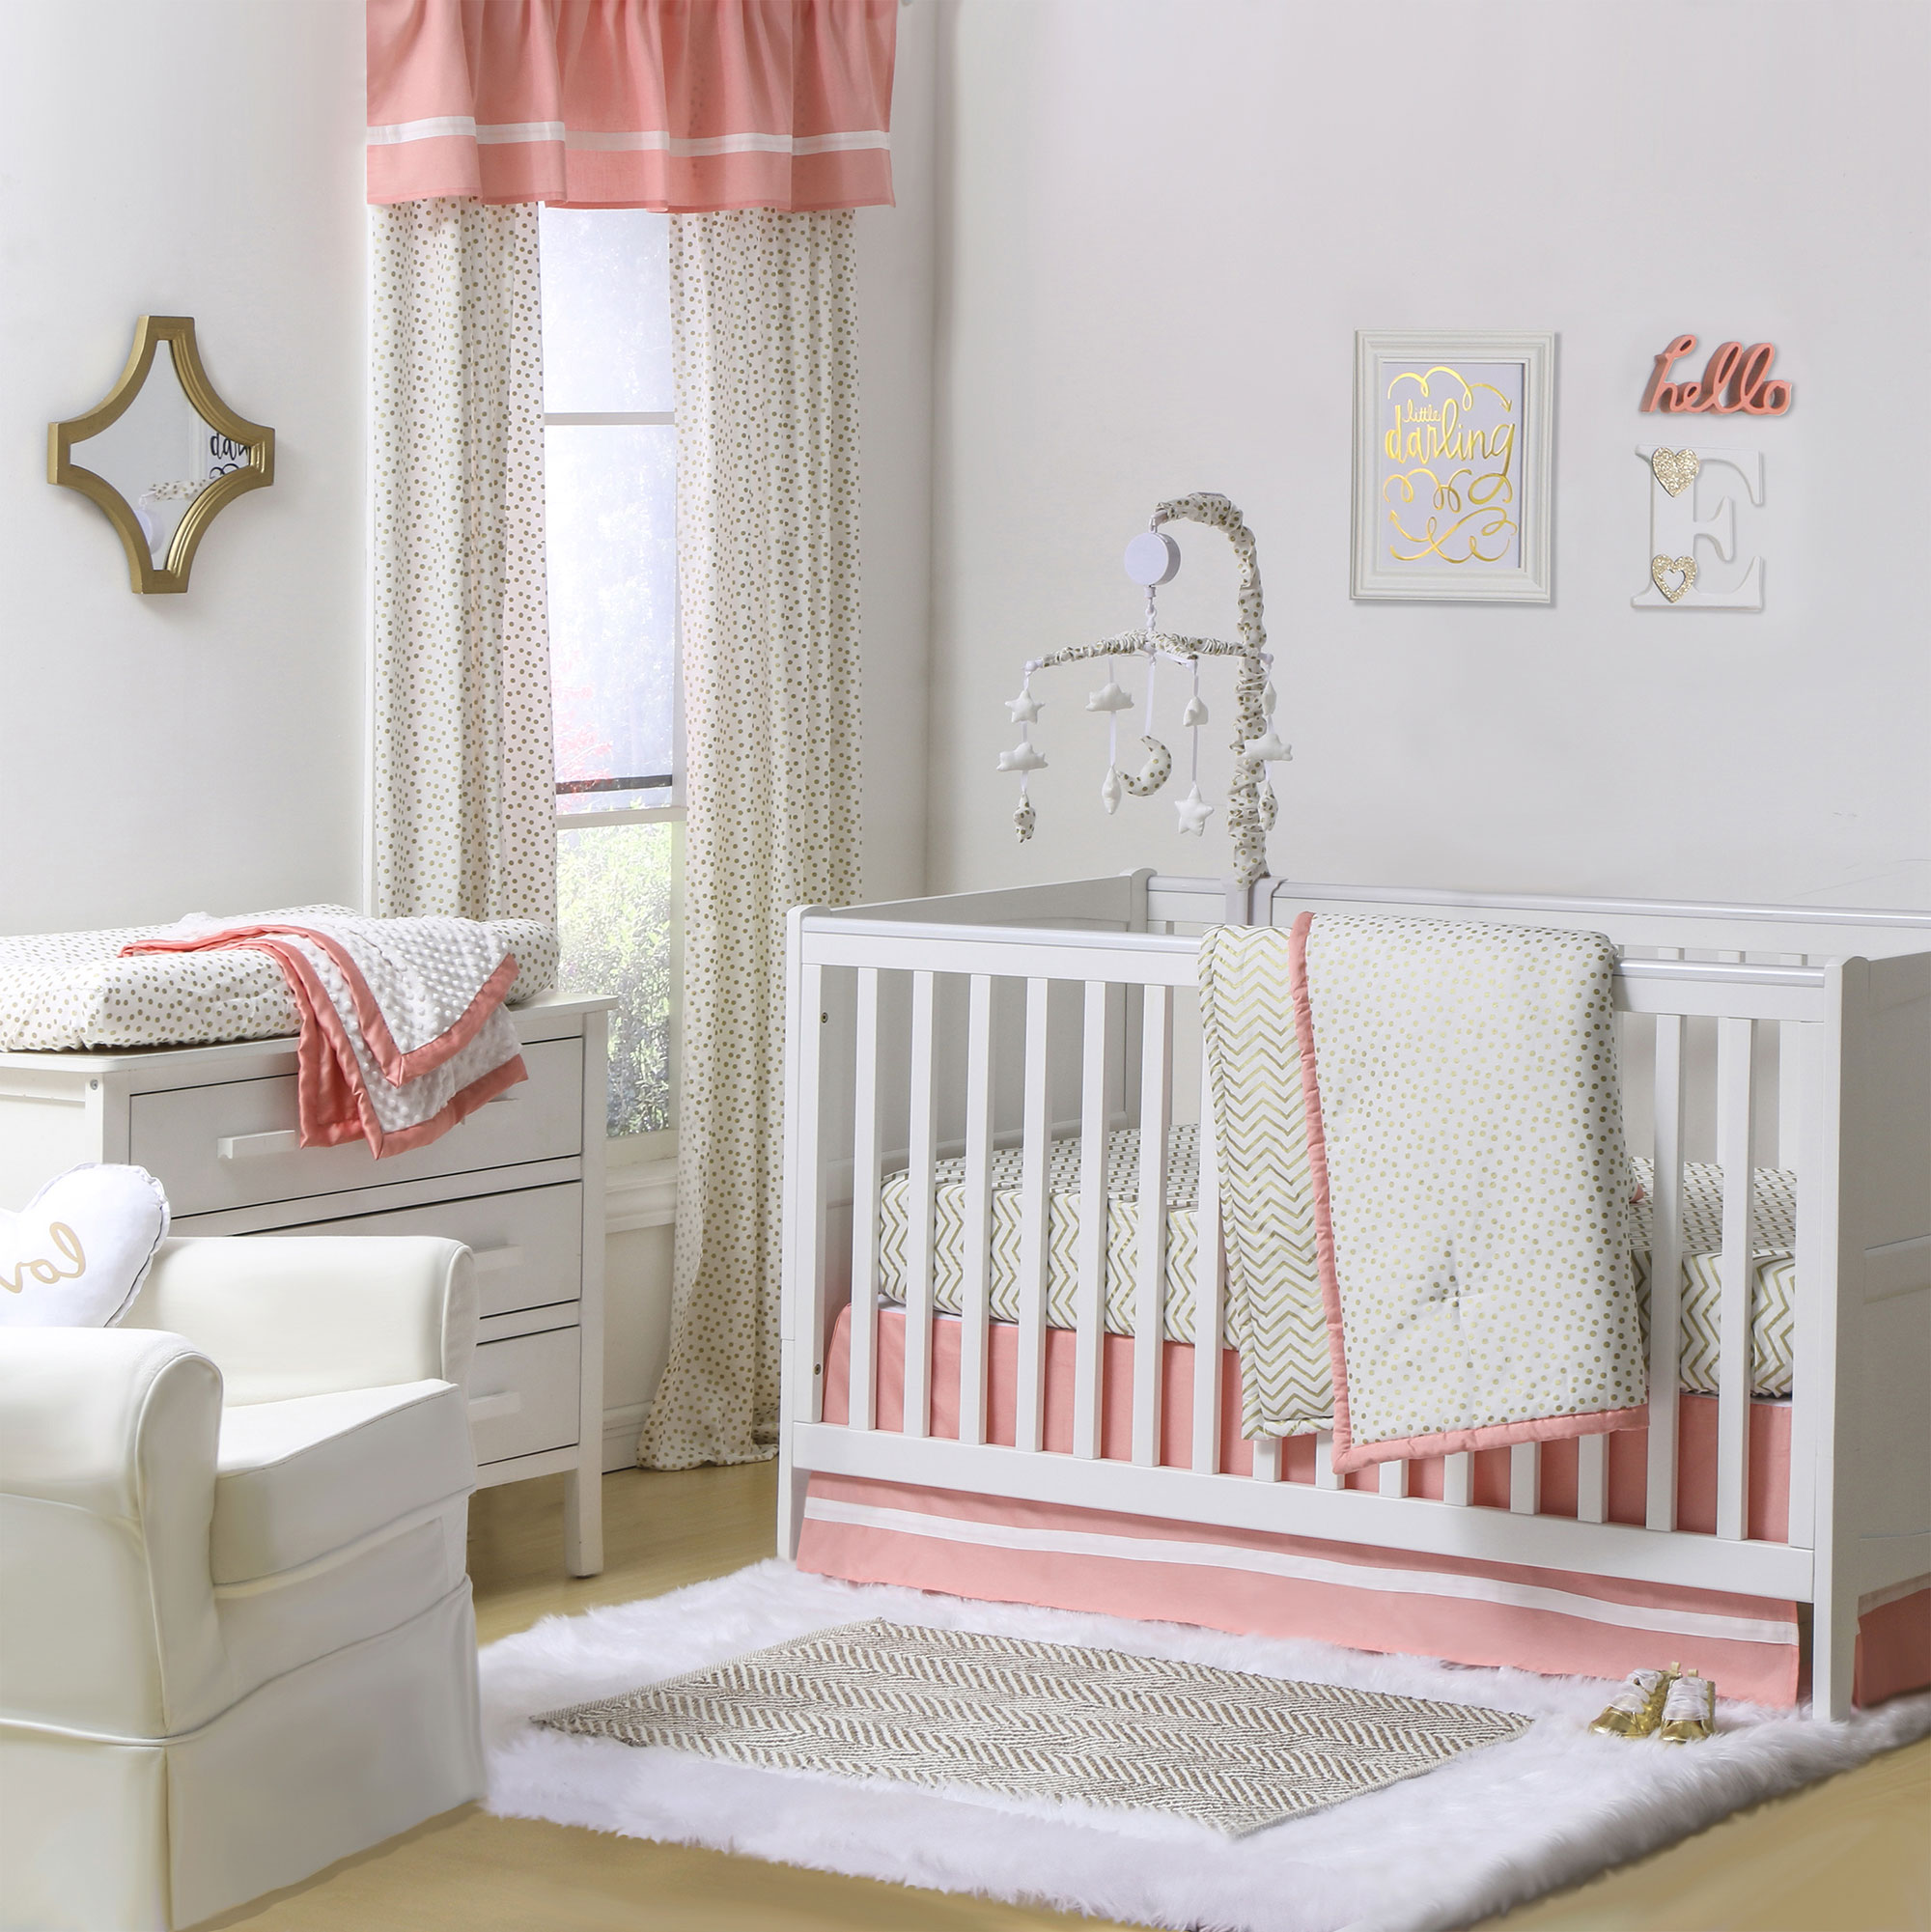 The Peanut Shell 3 Piece Baby Crib Bedding Set - Gold Zig Zag and Polka Dot with Coral Pink - 100% Cotton Quilt, Crib Skirt and Sheet